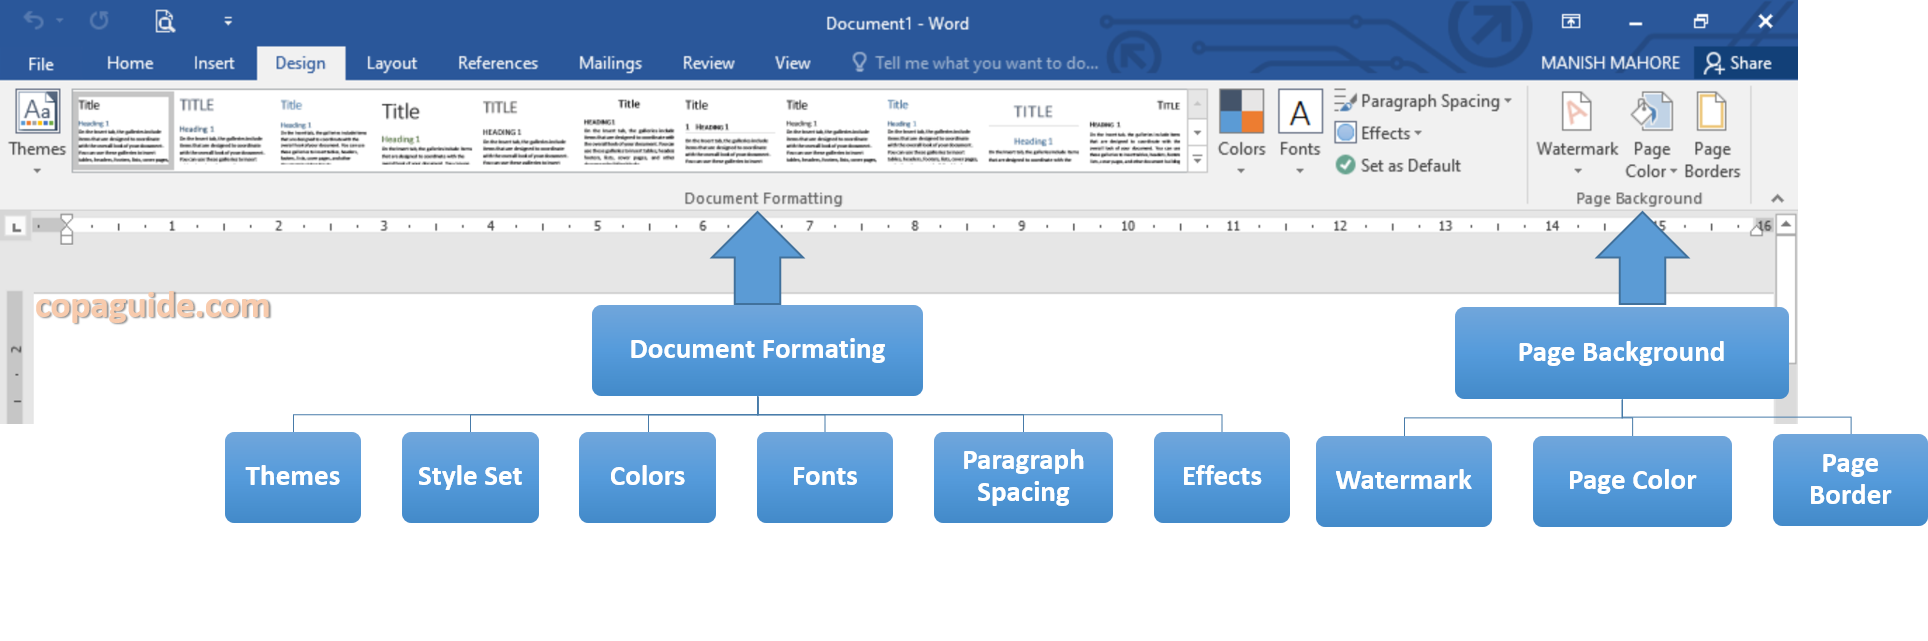 MS Word Design Tab Commands